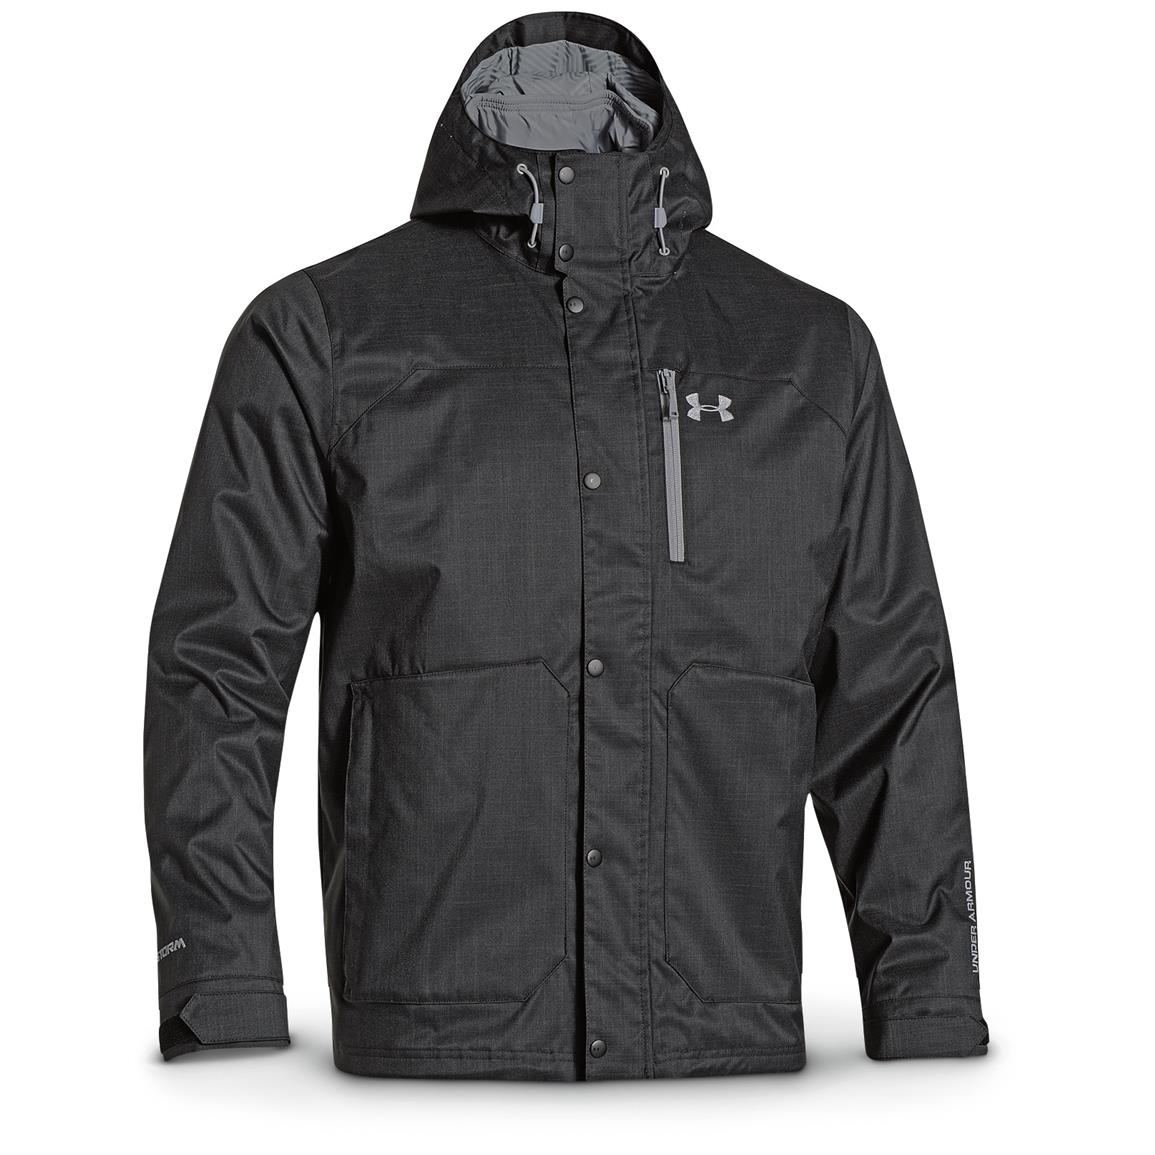 Men's Under Armour ColdGear Infrared Porter 3-in-1 Jacket, Black / Steel